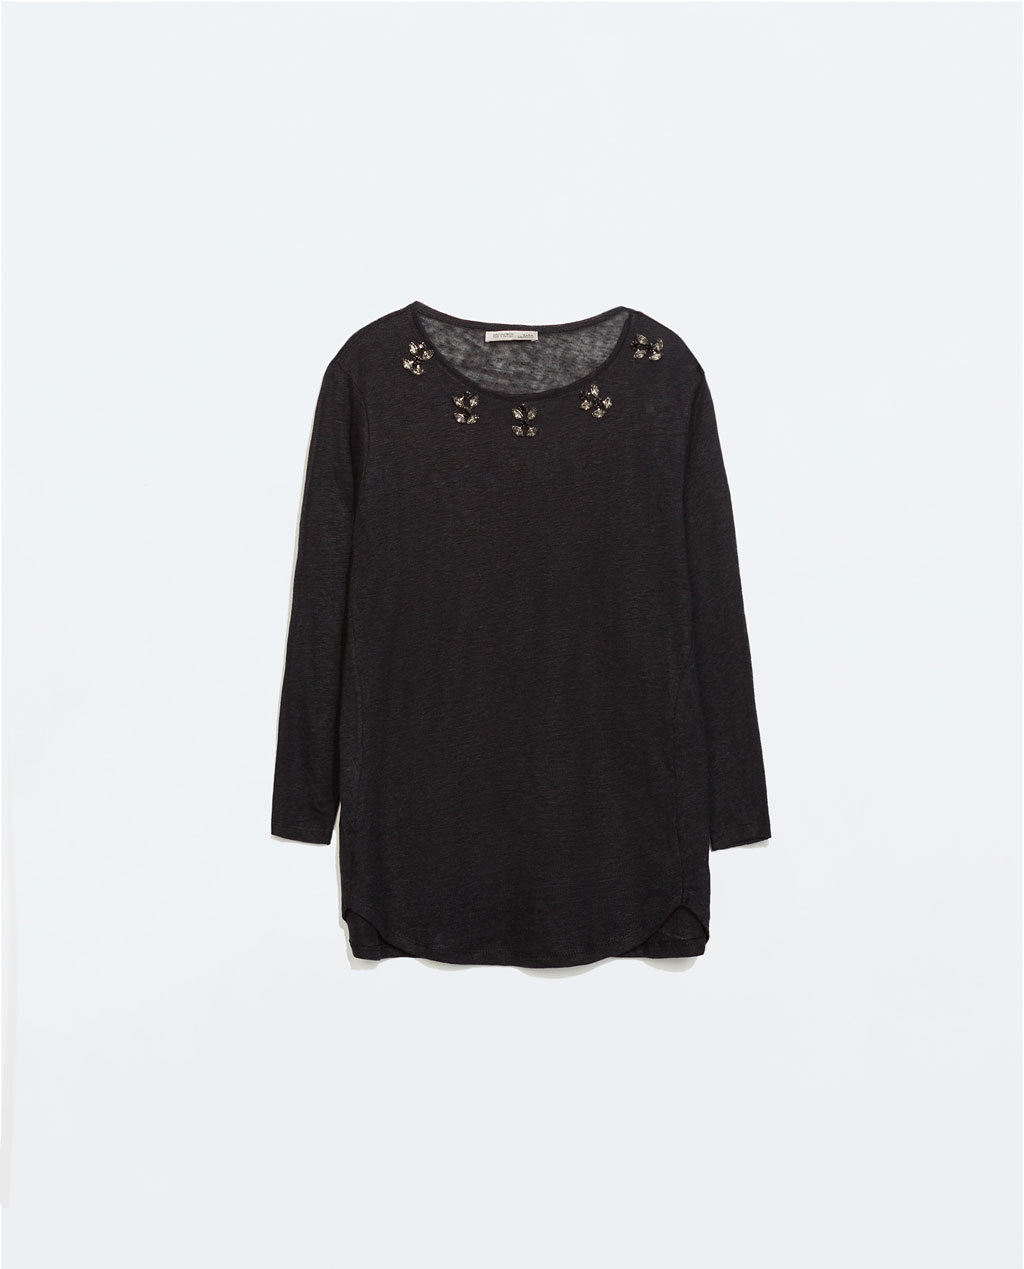 Linen T Shirt With Jewel Collar - neckline: round neck; pattern: plain; length: below the bottom; style: t-shirt; predominant colour: black; occasions: casual, creative work; fibres: linen - 100%; fit: loose; sleeve length: 3/4 length; sleeve style: standard; pattern type: fabric; texture group: jersey - stretchy/drapey; embellishment: jewels/stone; secondary colour: clear; season: a/w 2014; wardrobe: highlight; embellishment location: shoulder